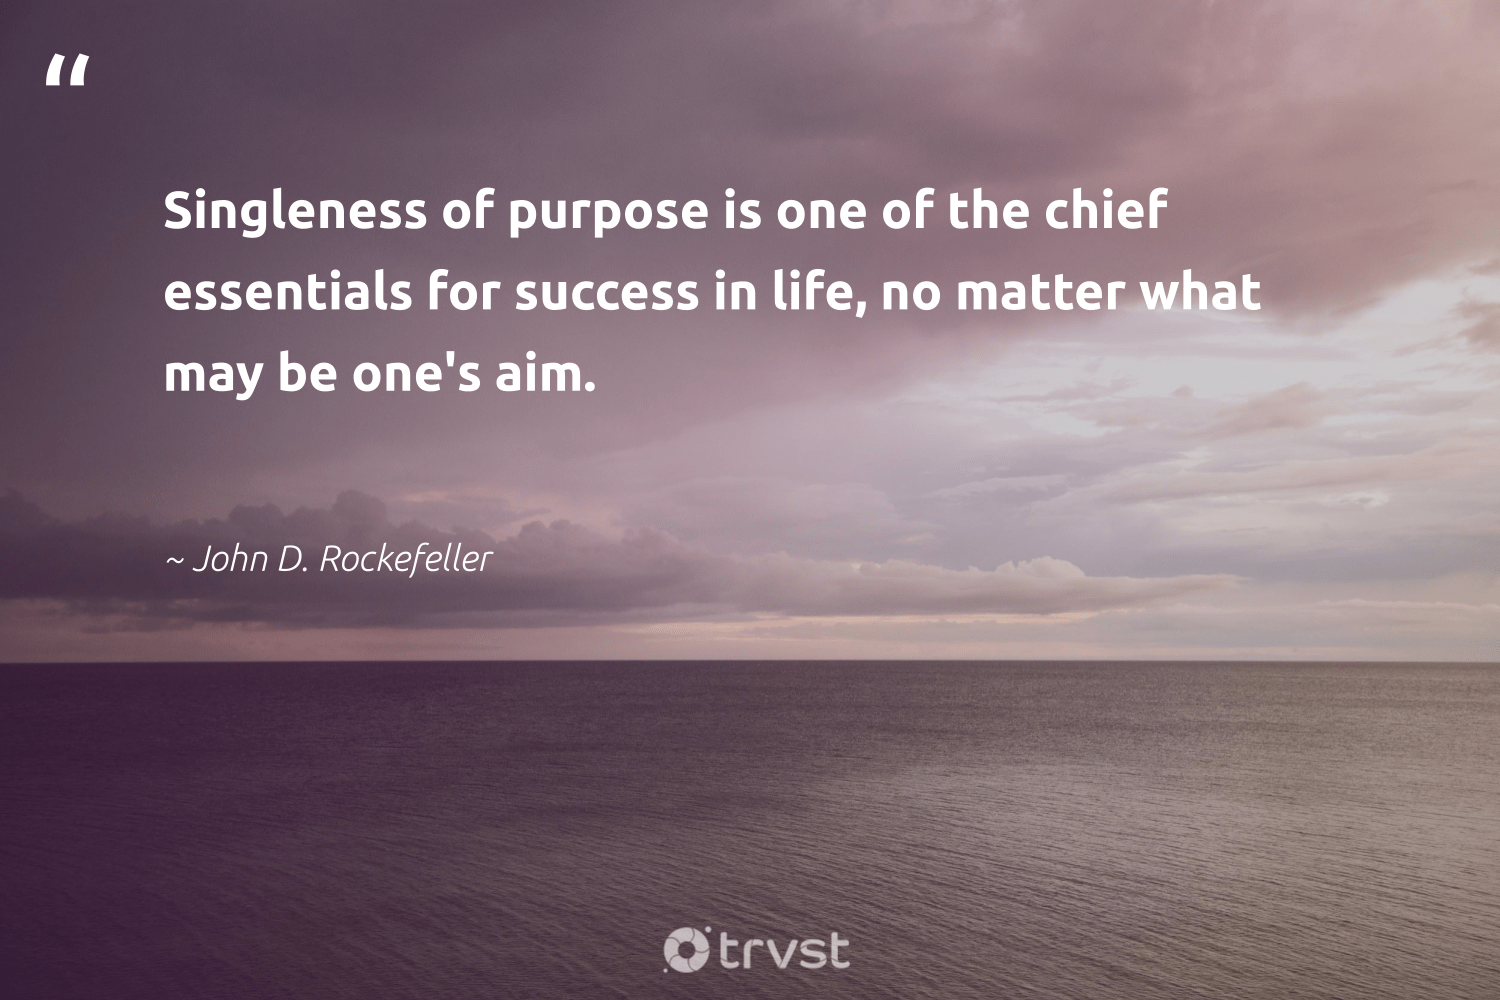 """""""Singleness of purpose is one of the chief essentials for success in life, no matter what may be one's aim.""""  - John D. Rockefeller #trvst #quotes #purpose #success #findingpupose #health #nevergiveup #gogreen #purposedriven #begreat #mindset #socialimpact"""